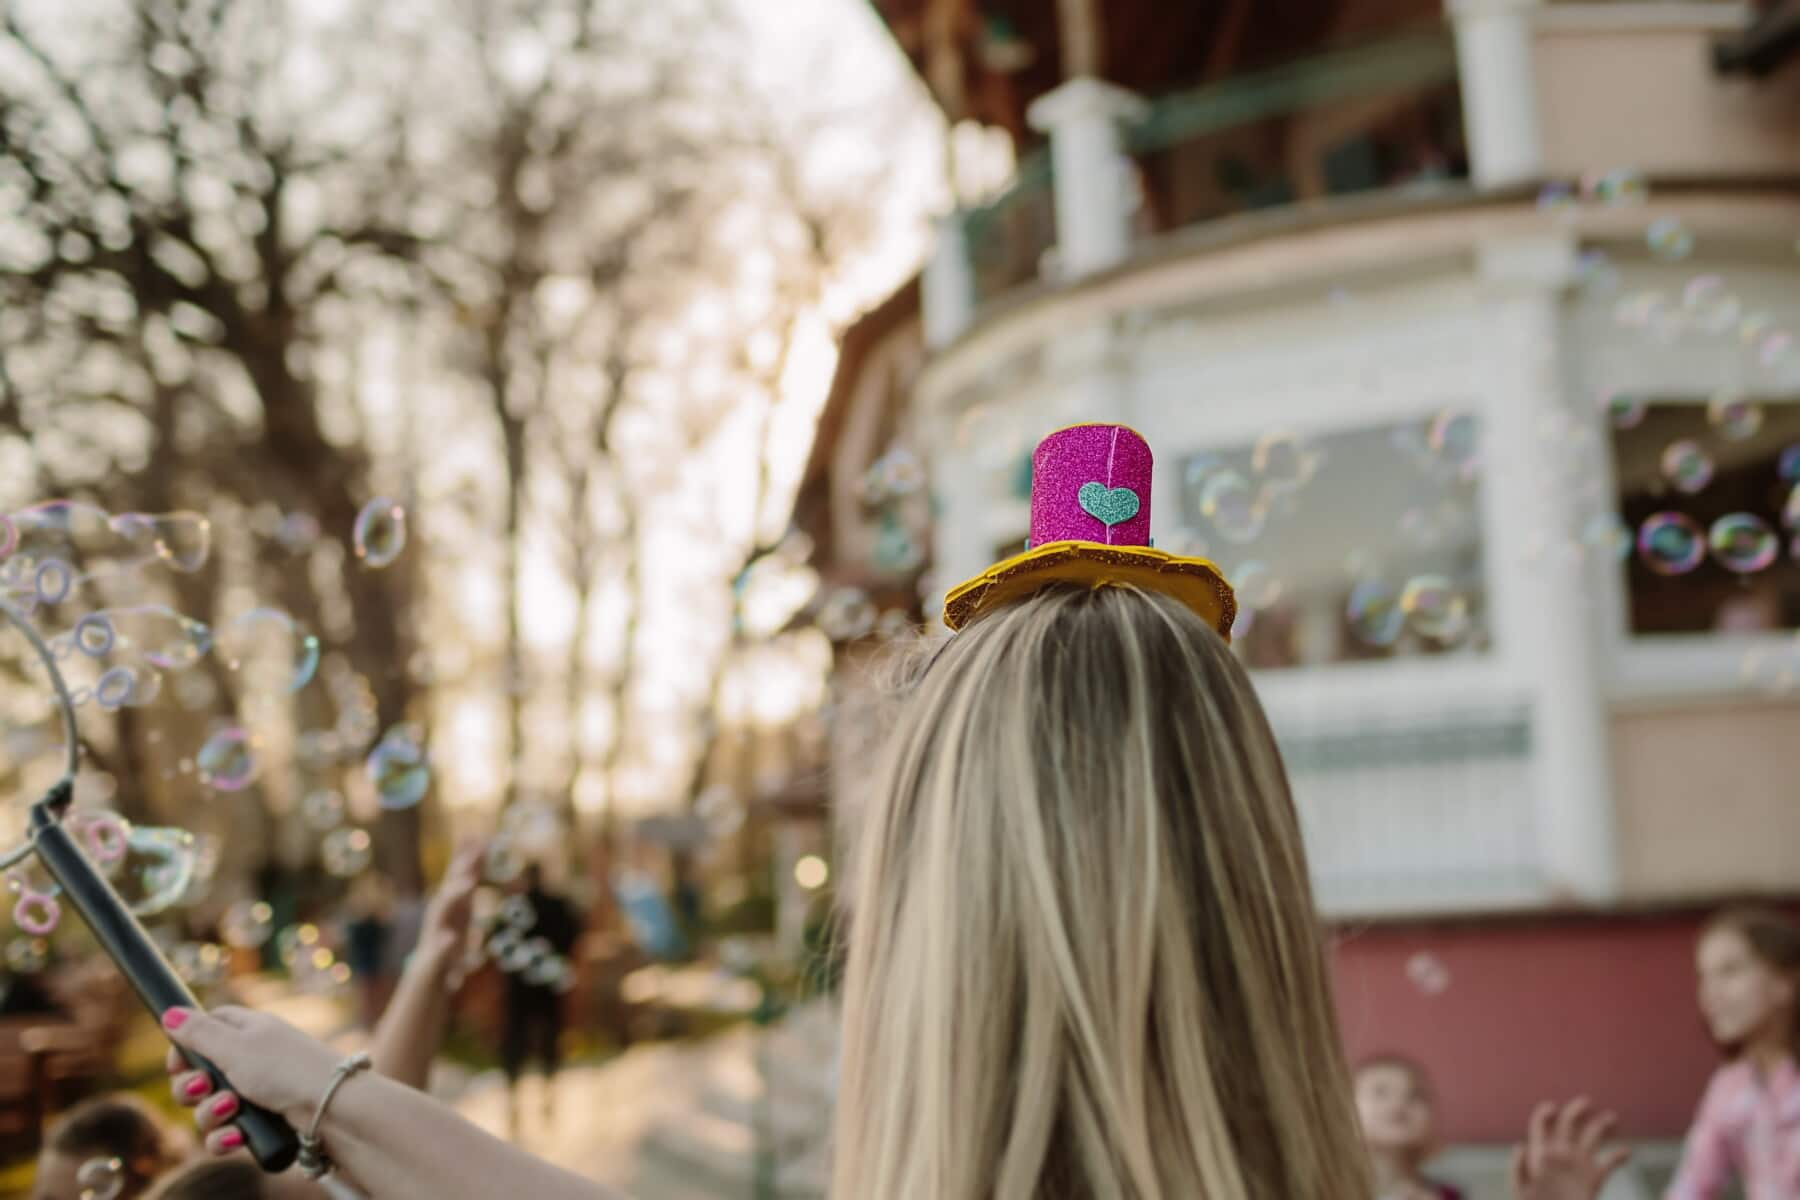 party, birthday, clown, blonde hair, young woman, bauble, entertainment, entertainer, people, woman